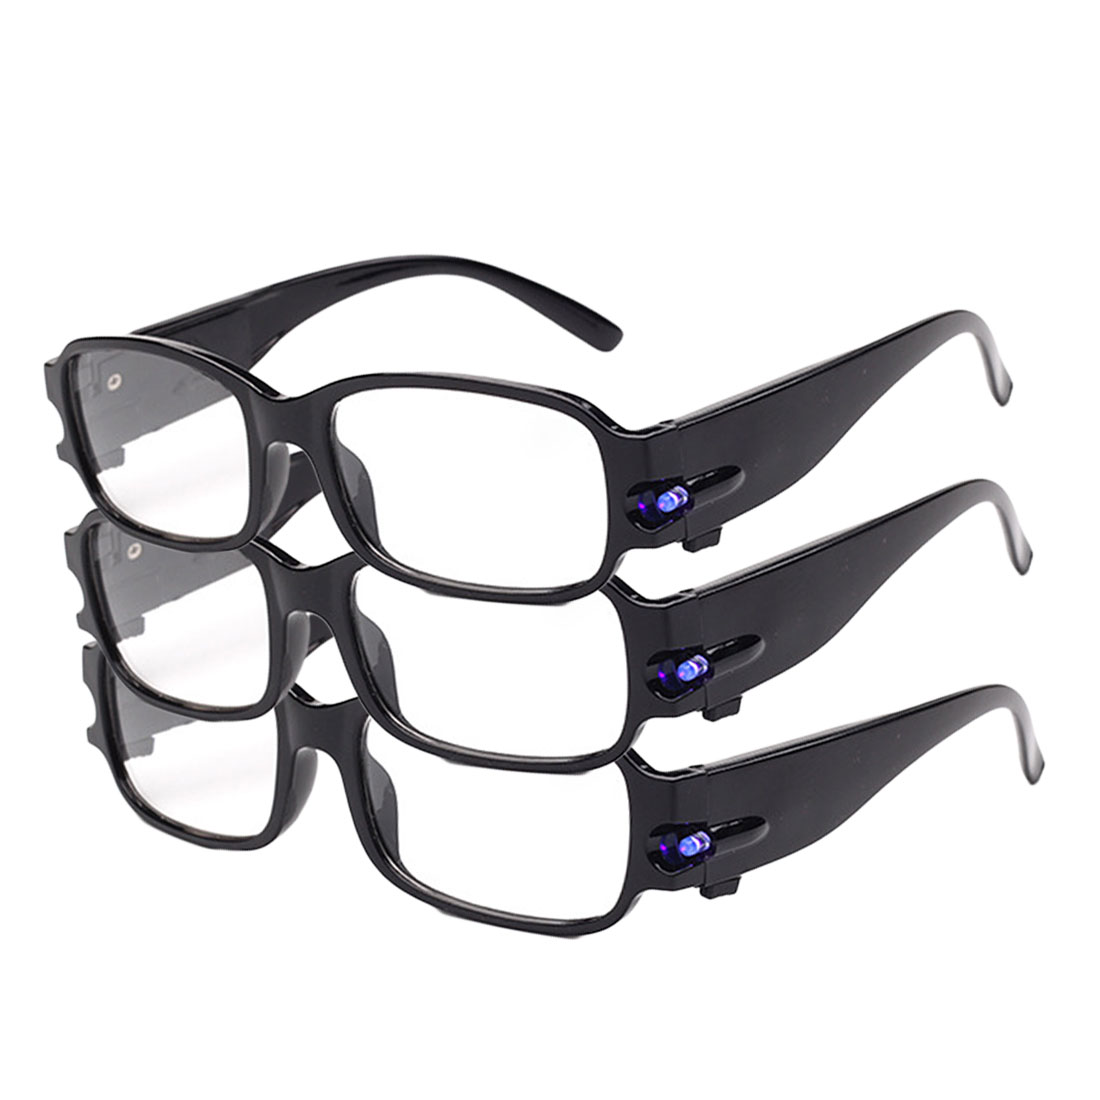 New Arrival Portable Magnifying Eyewear Reading Glasses Gift For The Aged Magnifier 100/350/400 Degree Vision Glasses